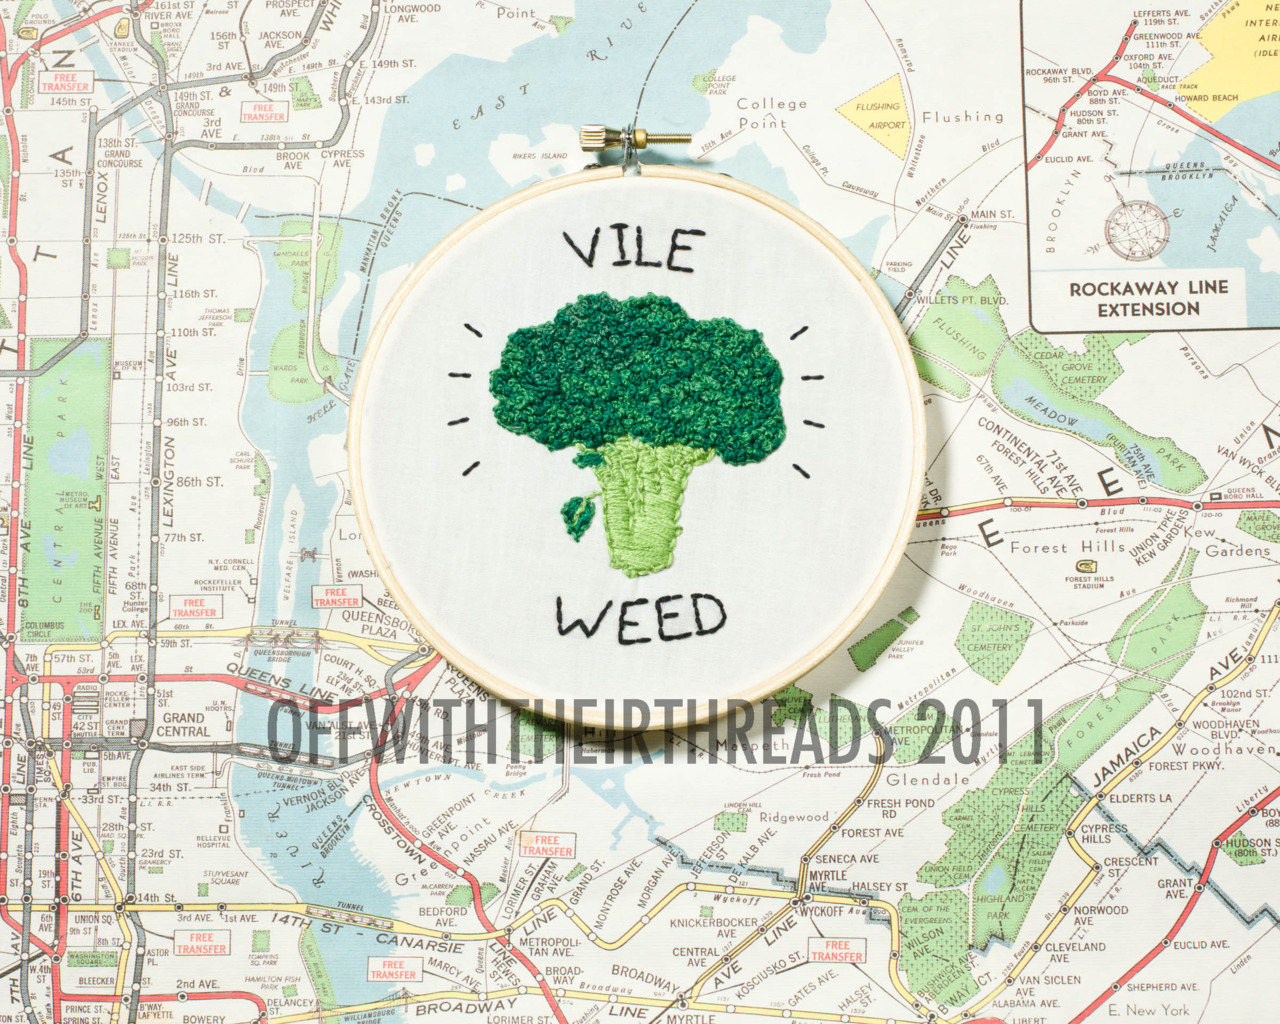 executiveproducerdickwolf: Vile Weed, 2011. available for purchase!